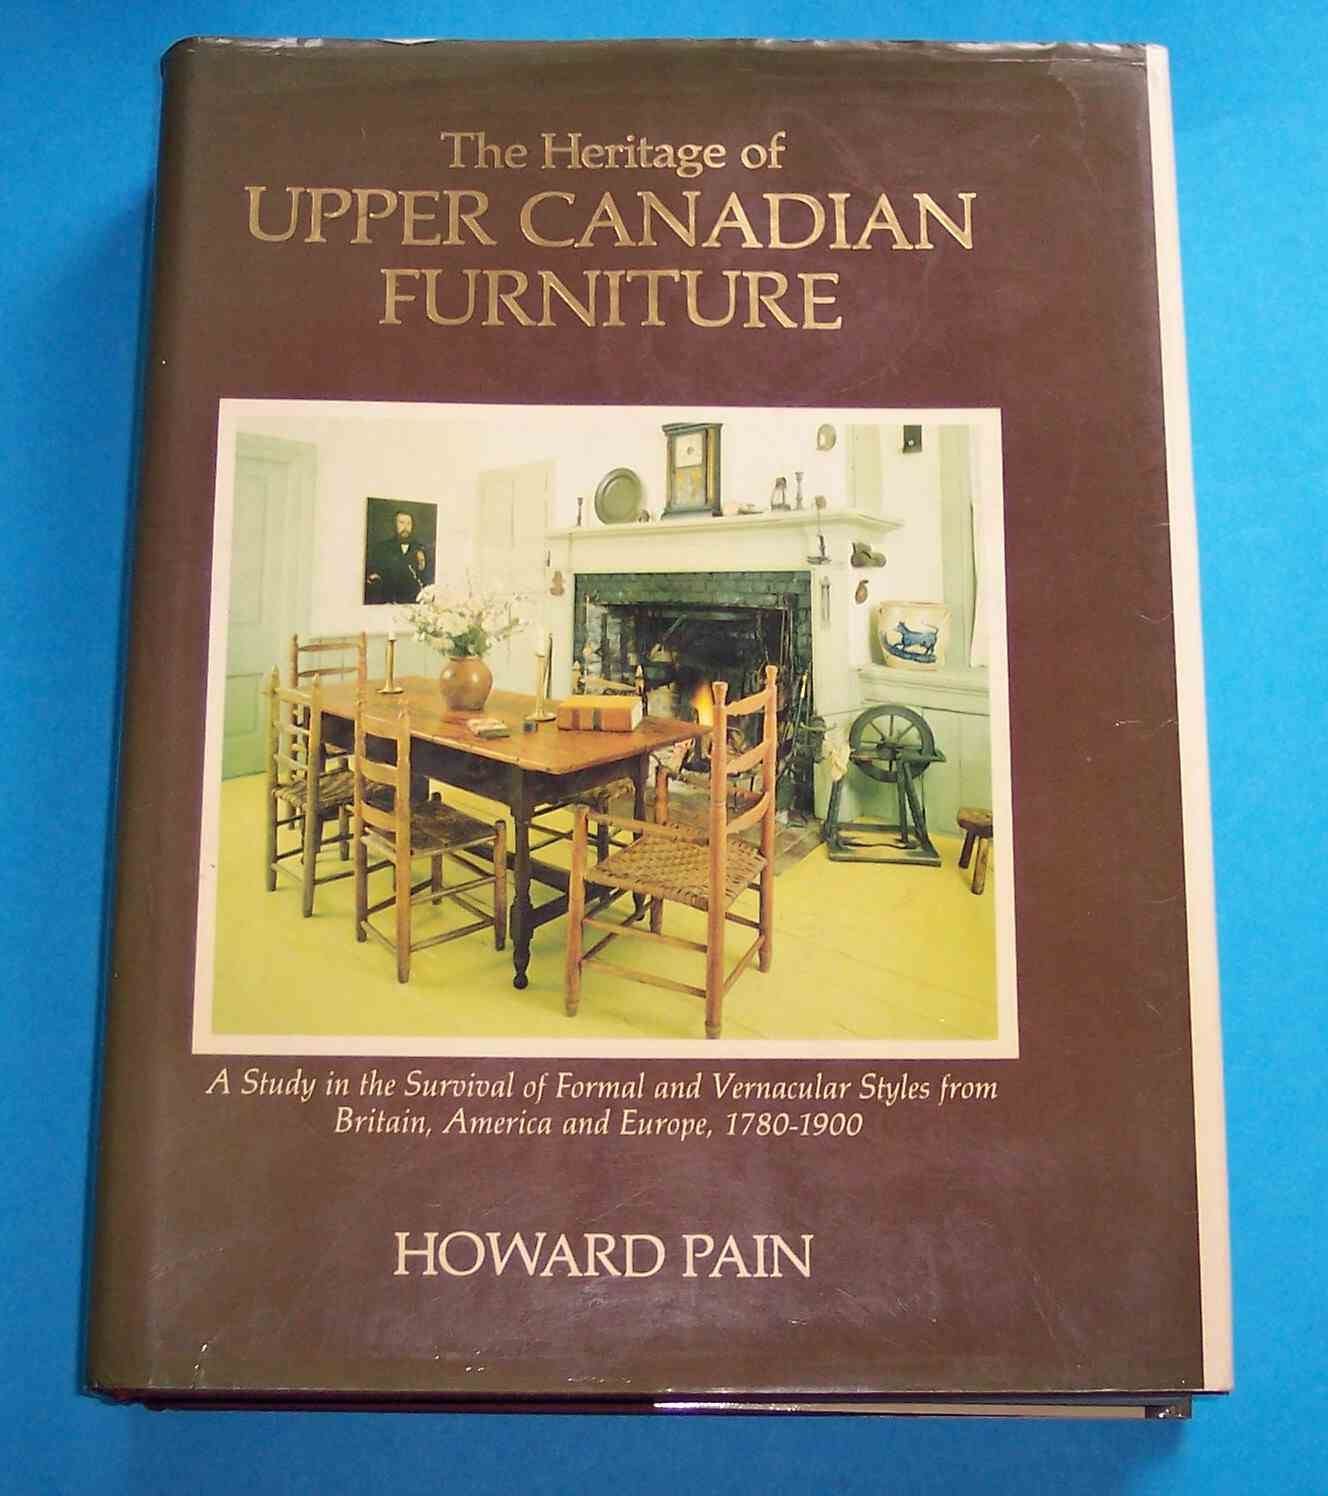 Image for The Heritage of Upper Canadian Furniture A Study in the Survival of Formal and Vernacular Styles from Britain, America and Europe, 1780-1900